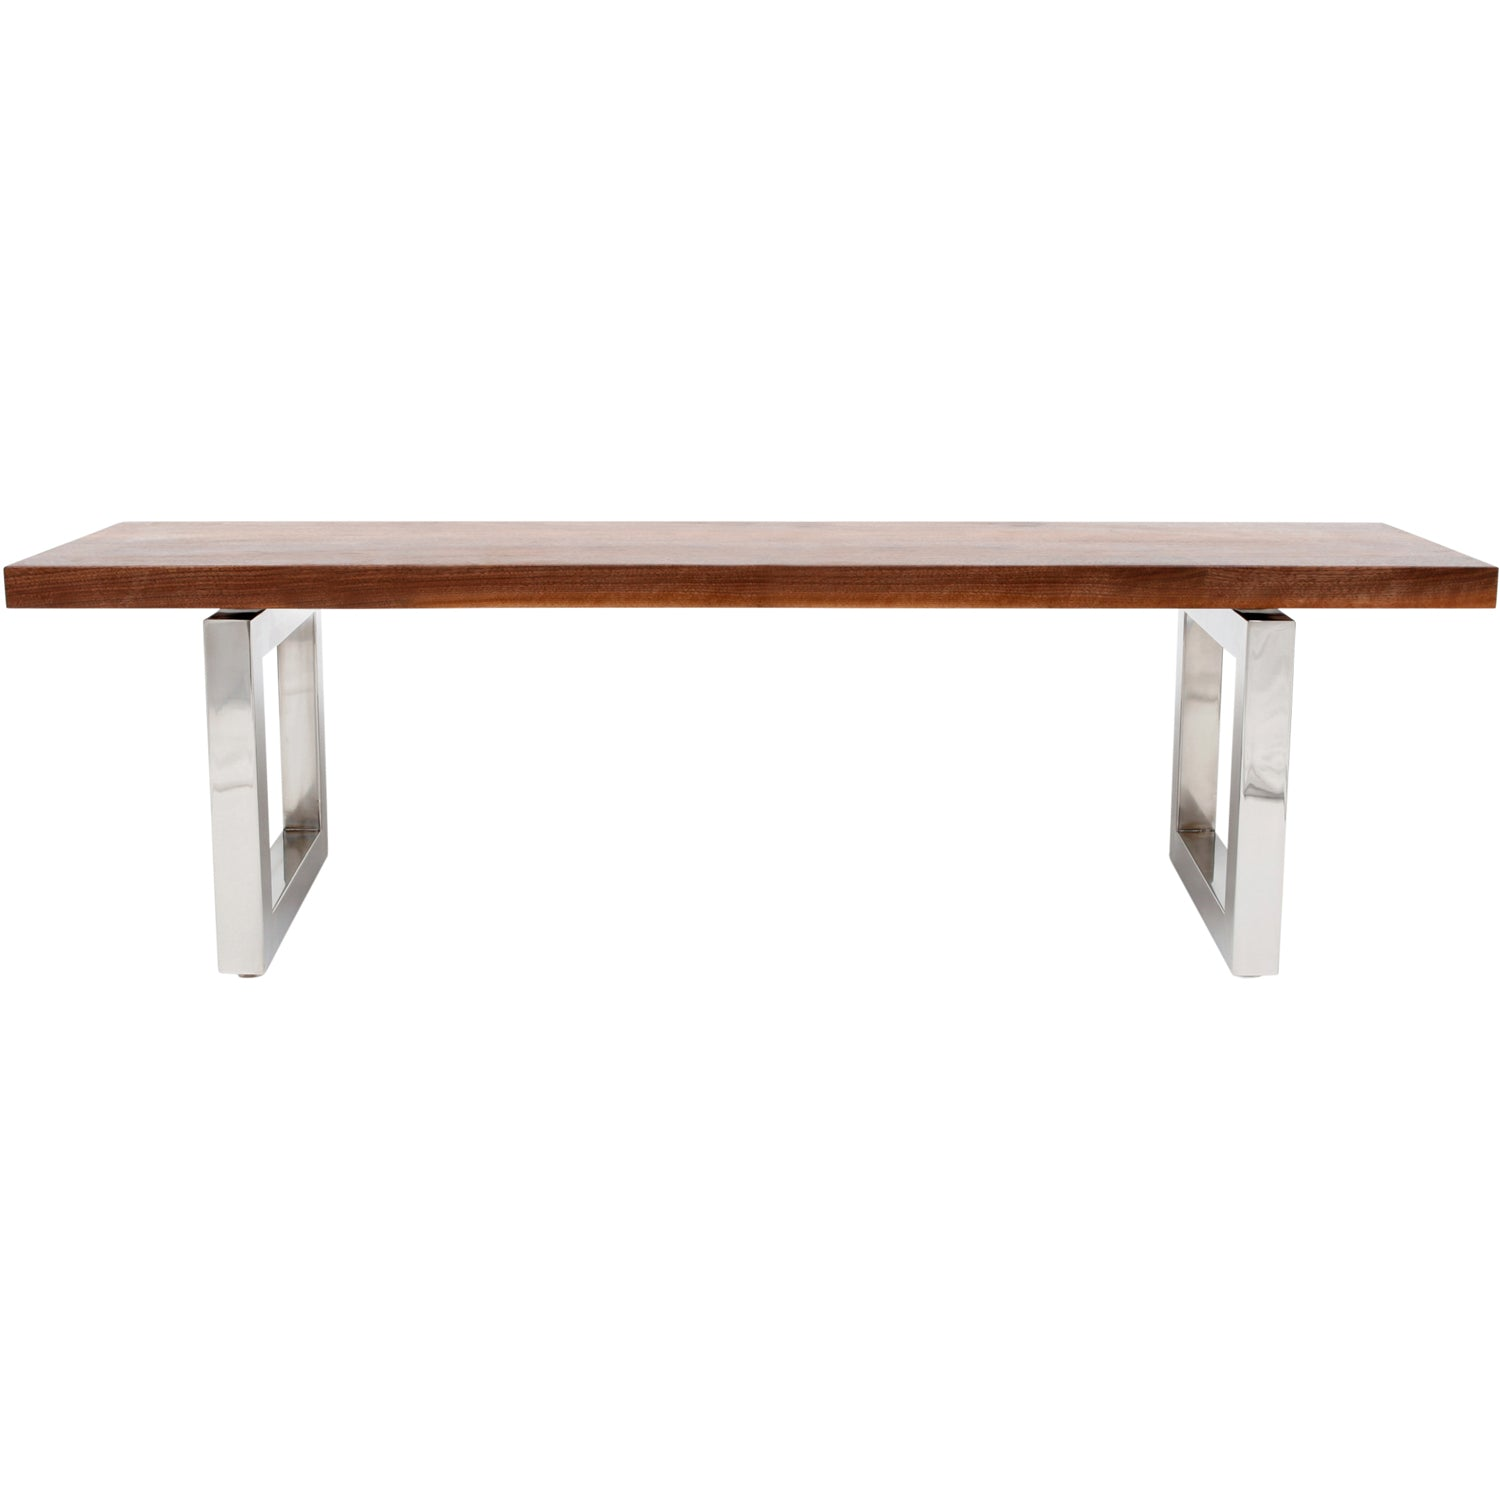 Artless GAX 16 Wood Bench GAX 96W X 16D X 18H Polished Copper